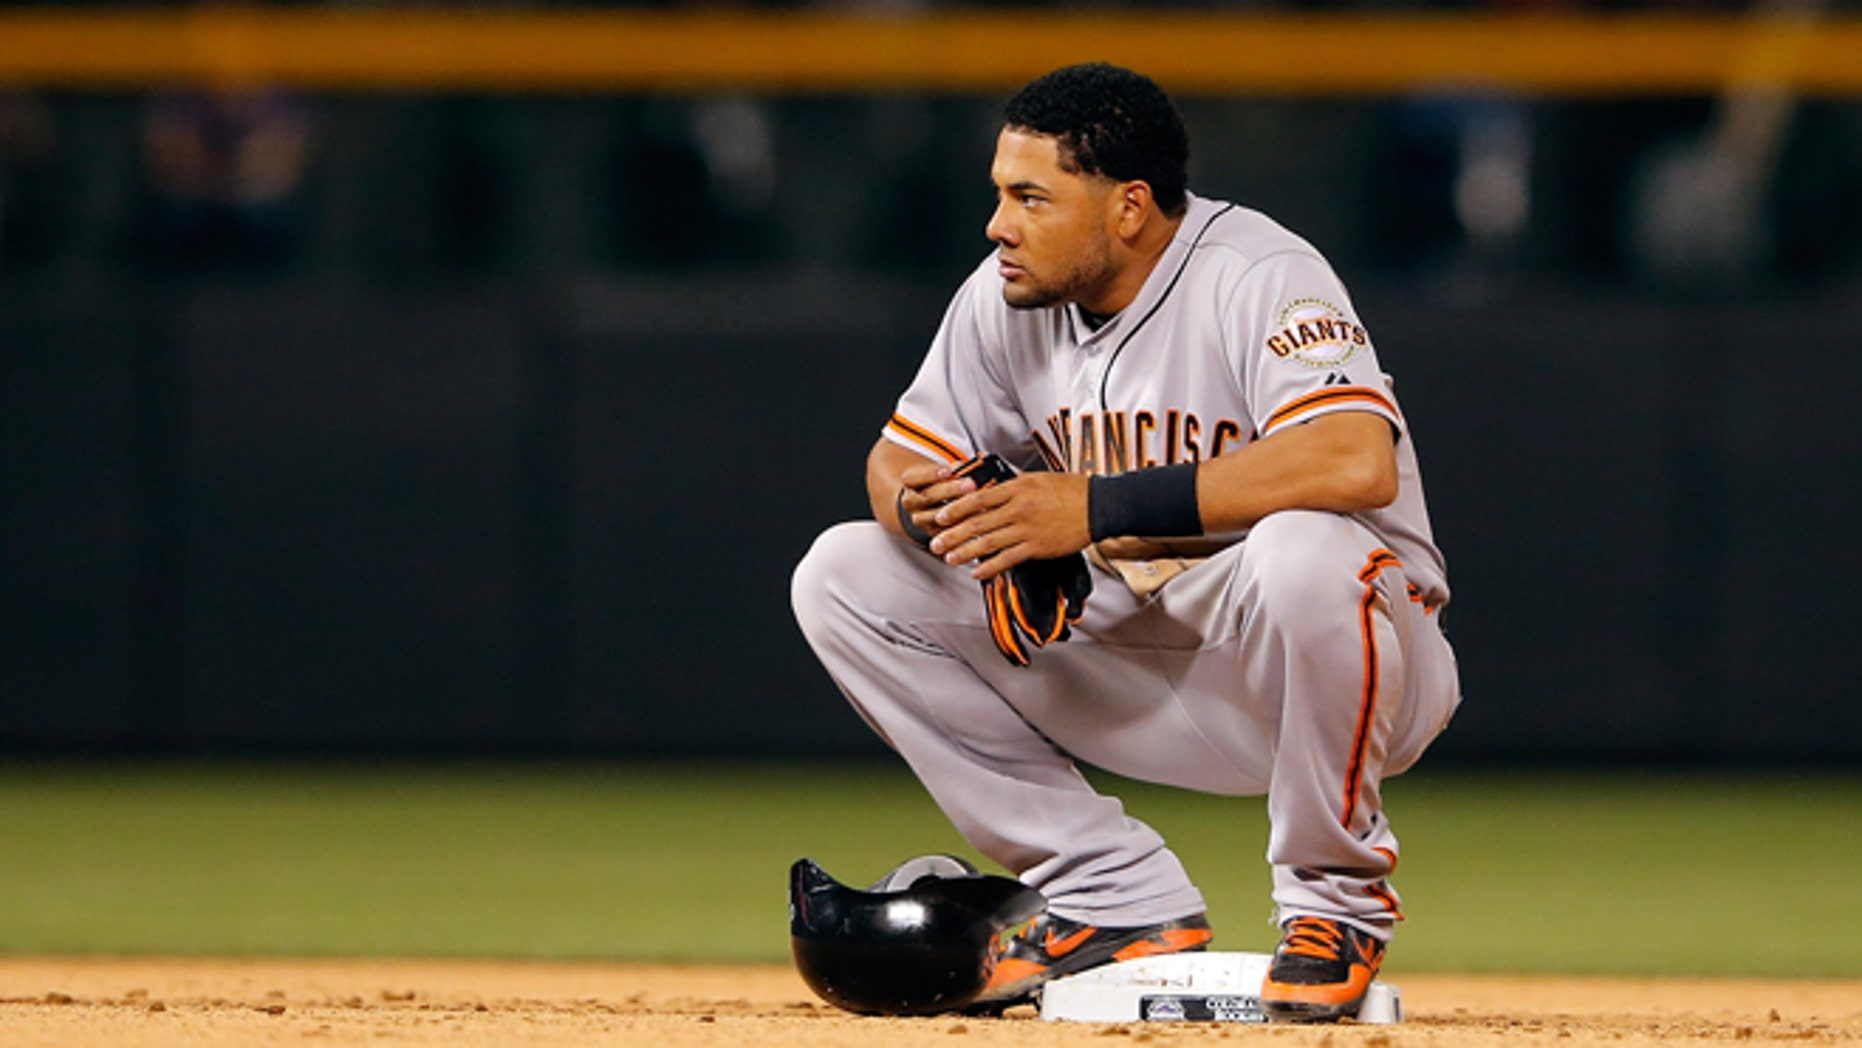 DENVER, CO - AUGUST 03:  Melky Cabrera #53 of the San Francisco Giants pauses at second base after doubling against the Colorado Rockies at Coors Field on August 3, 2012 in Denver, Colorado. The Giants defeated the Rockies 16-4.  (Photo by Doug Pensinger/Getty Images)